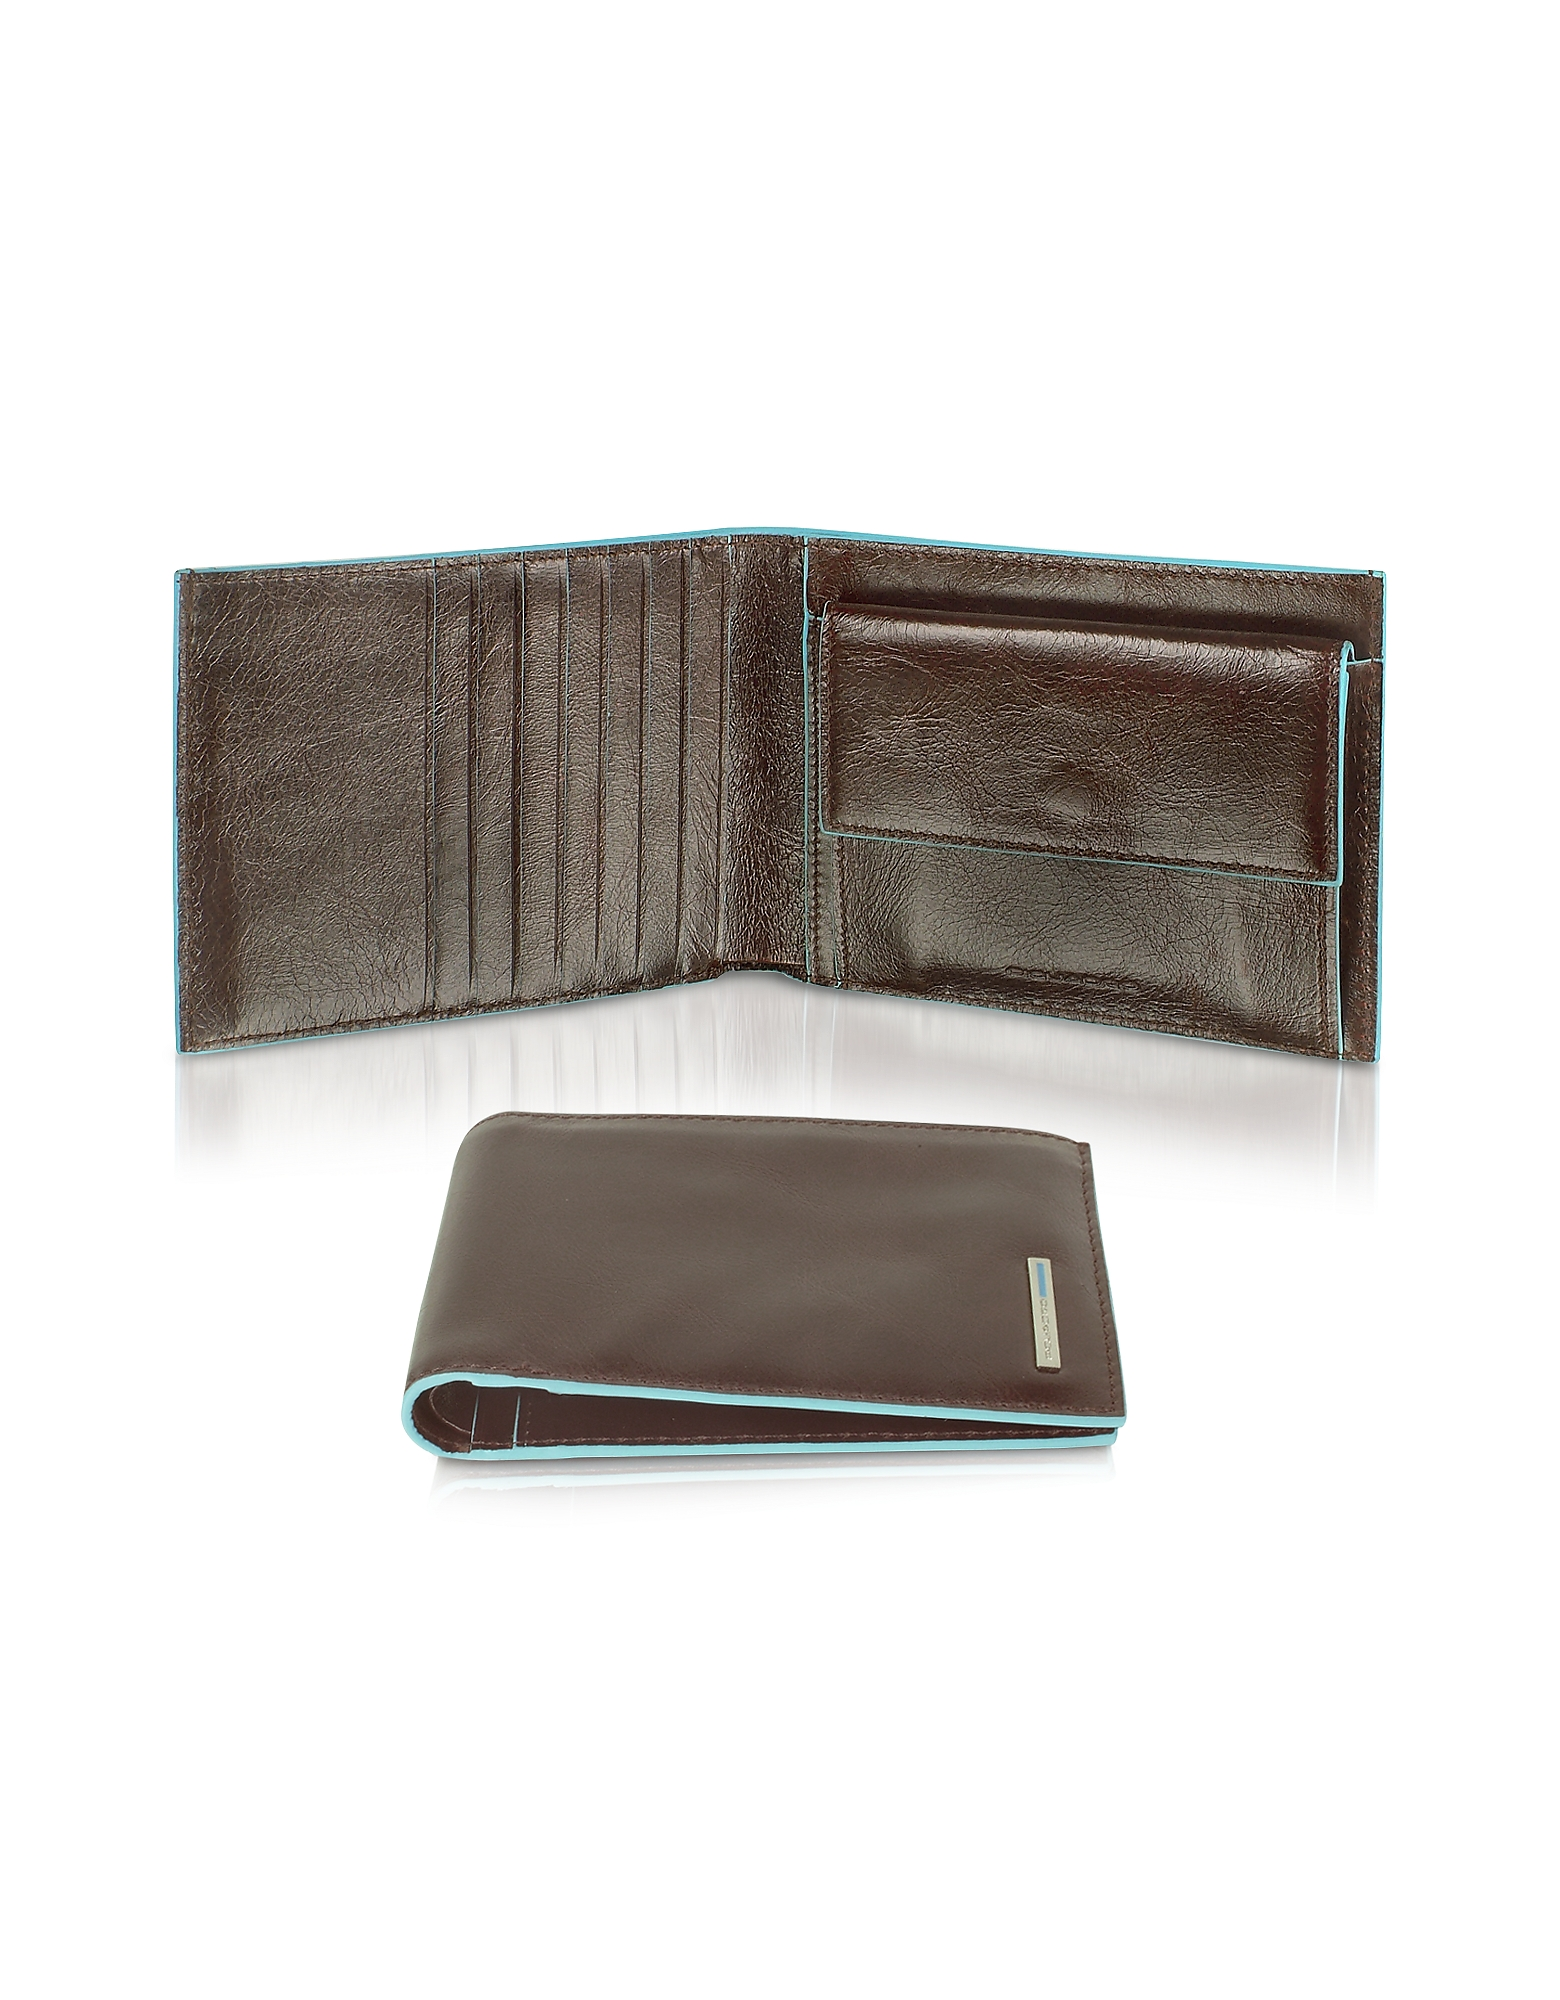 Blue Square-Men's Billfold Leather Wallet